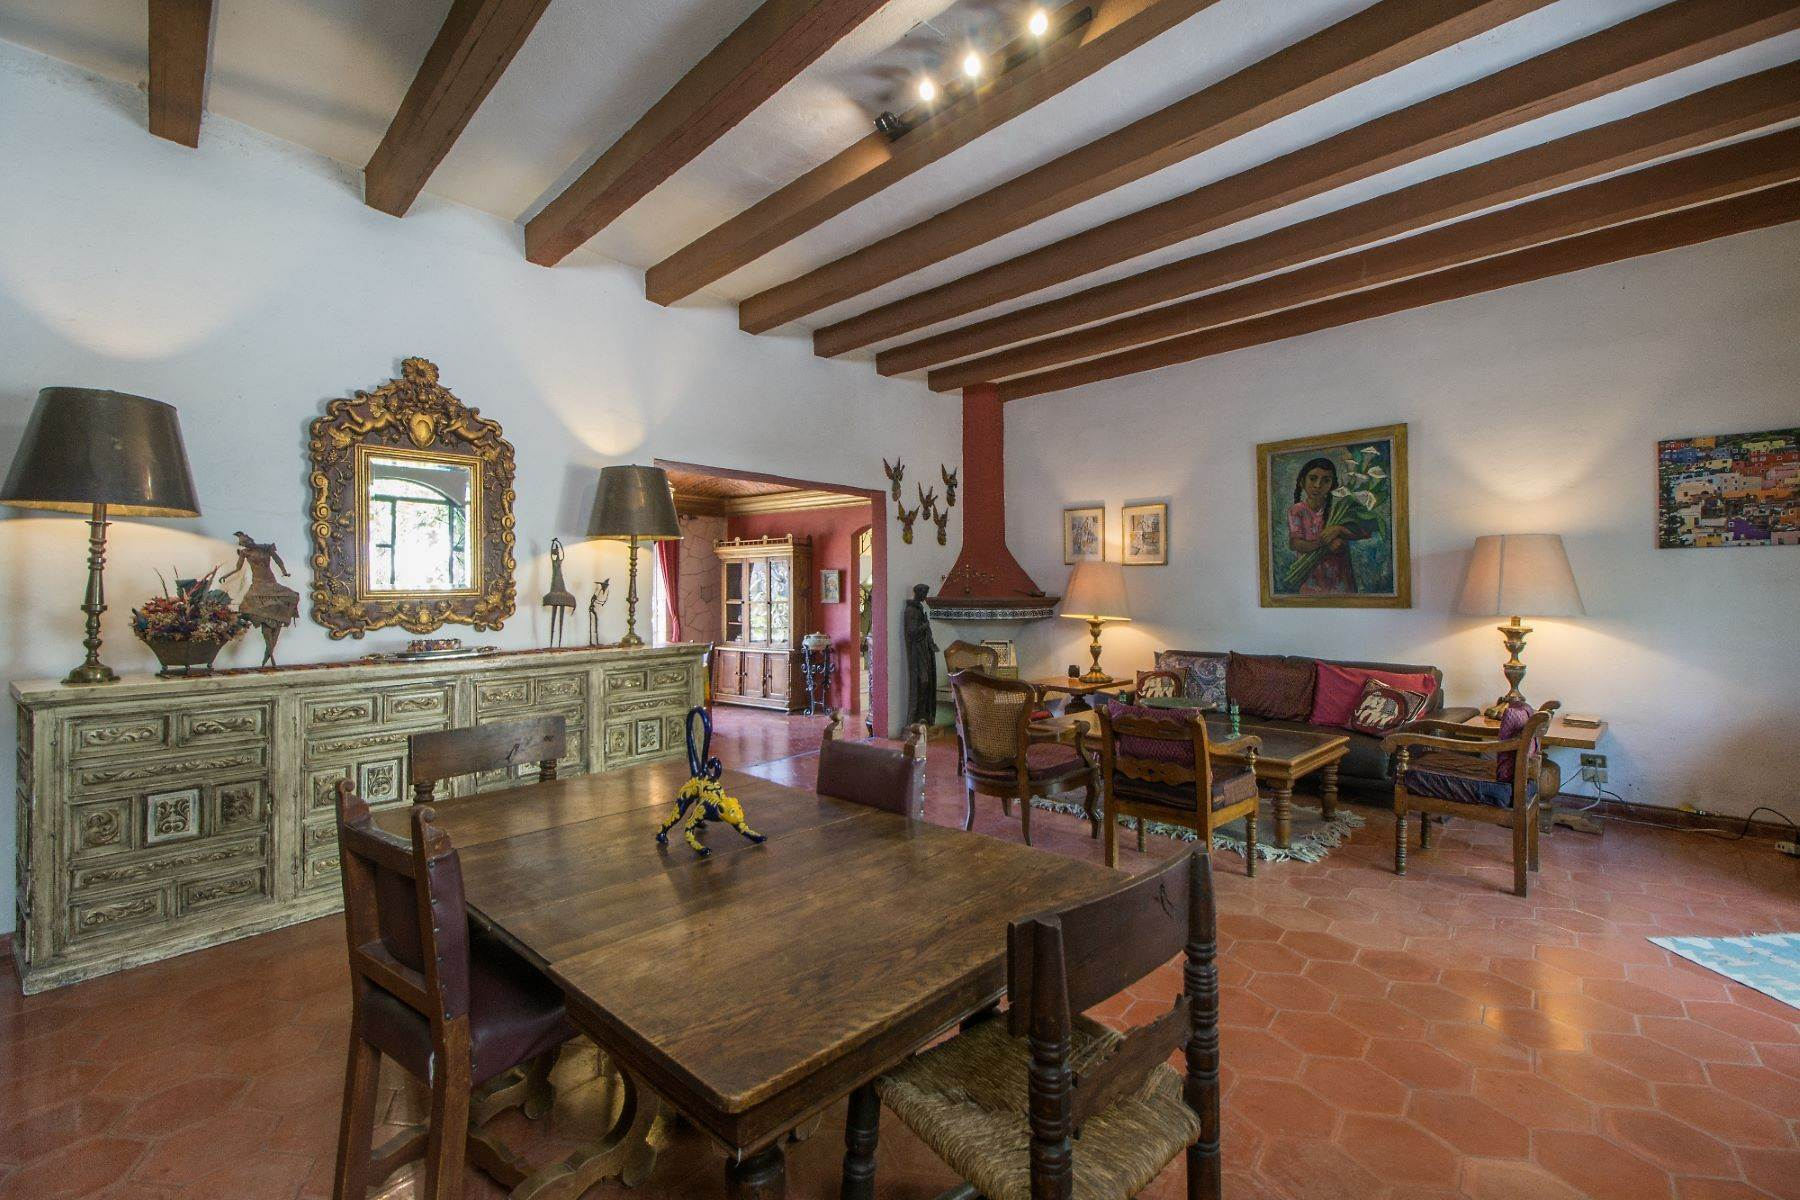 Property for Sale at Casa Christina San Antonio, San Miguel De Allende, Guanajuato Mexico